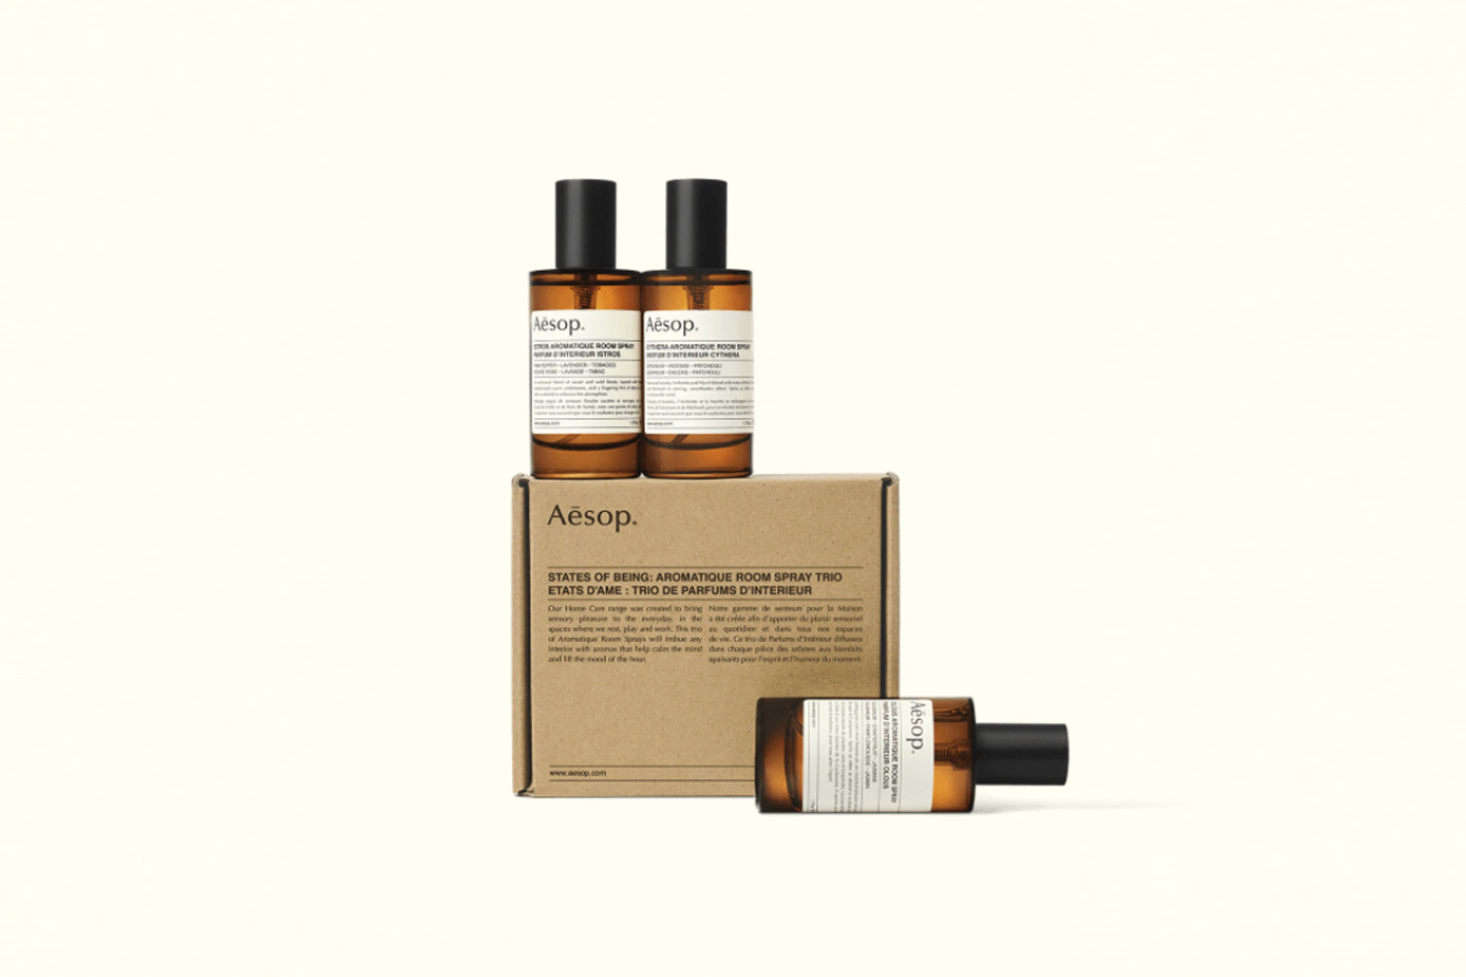 The States of Being Aromatique Room Spray Trio includes all three of Aesop&#8